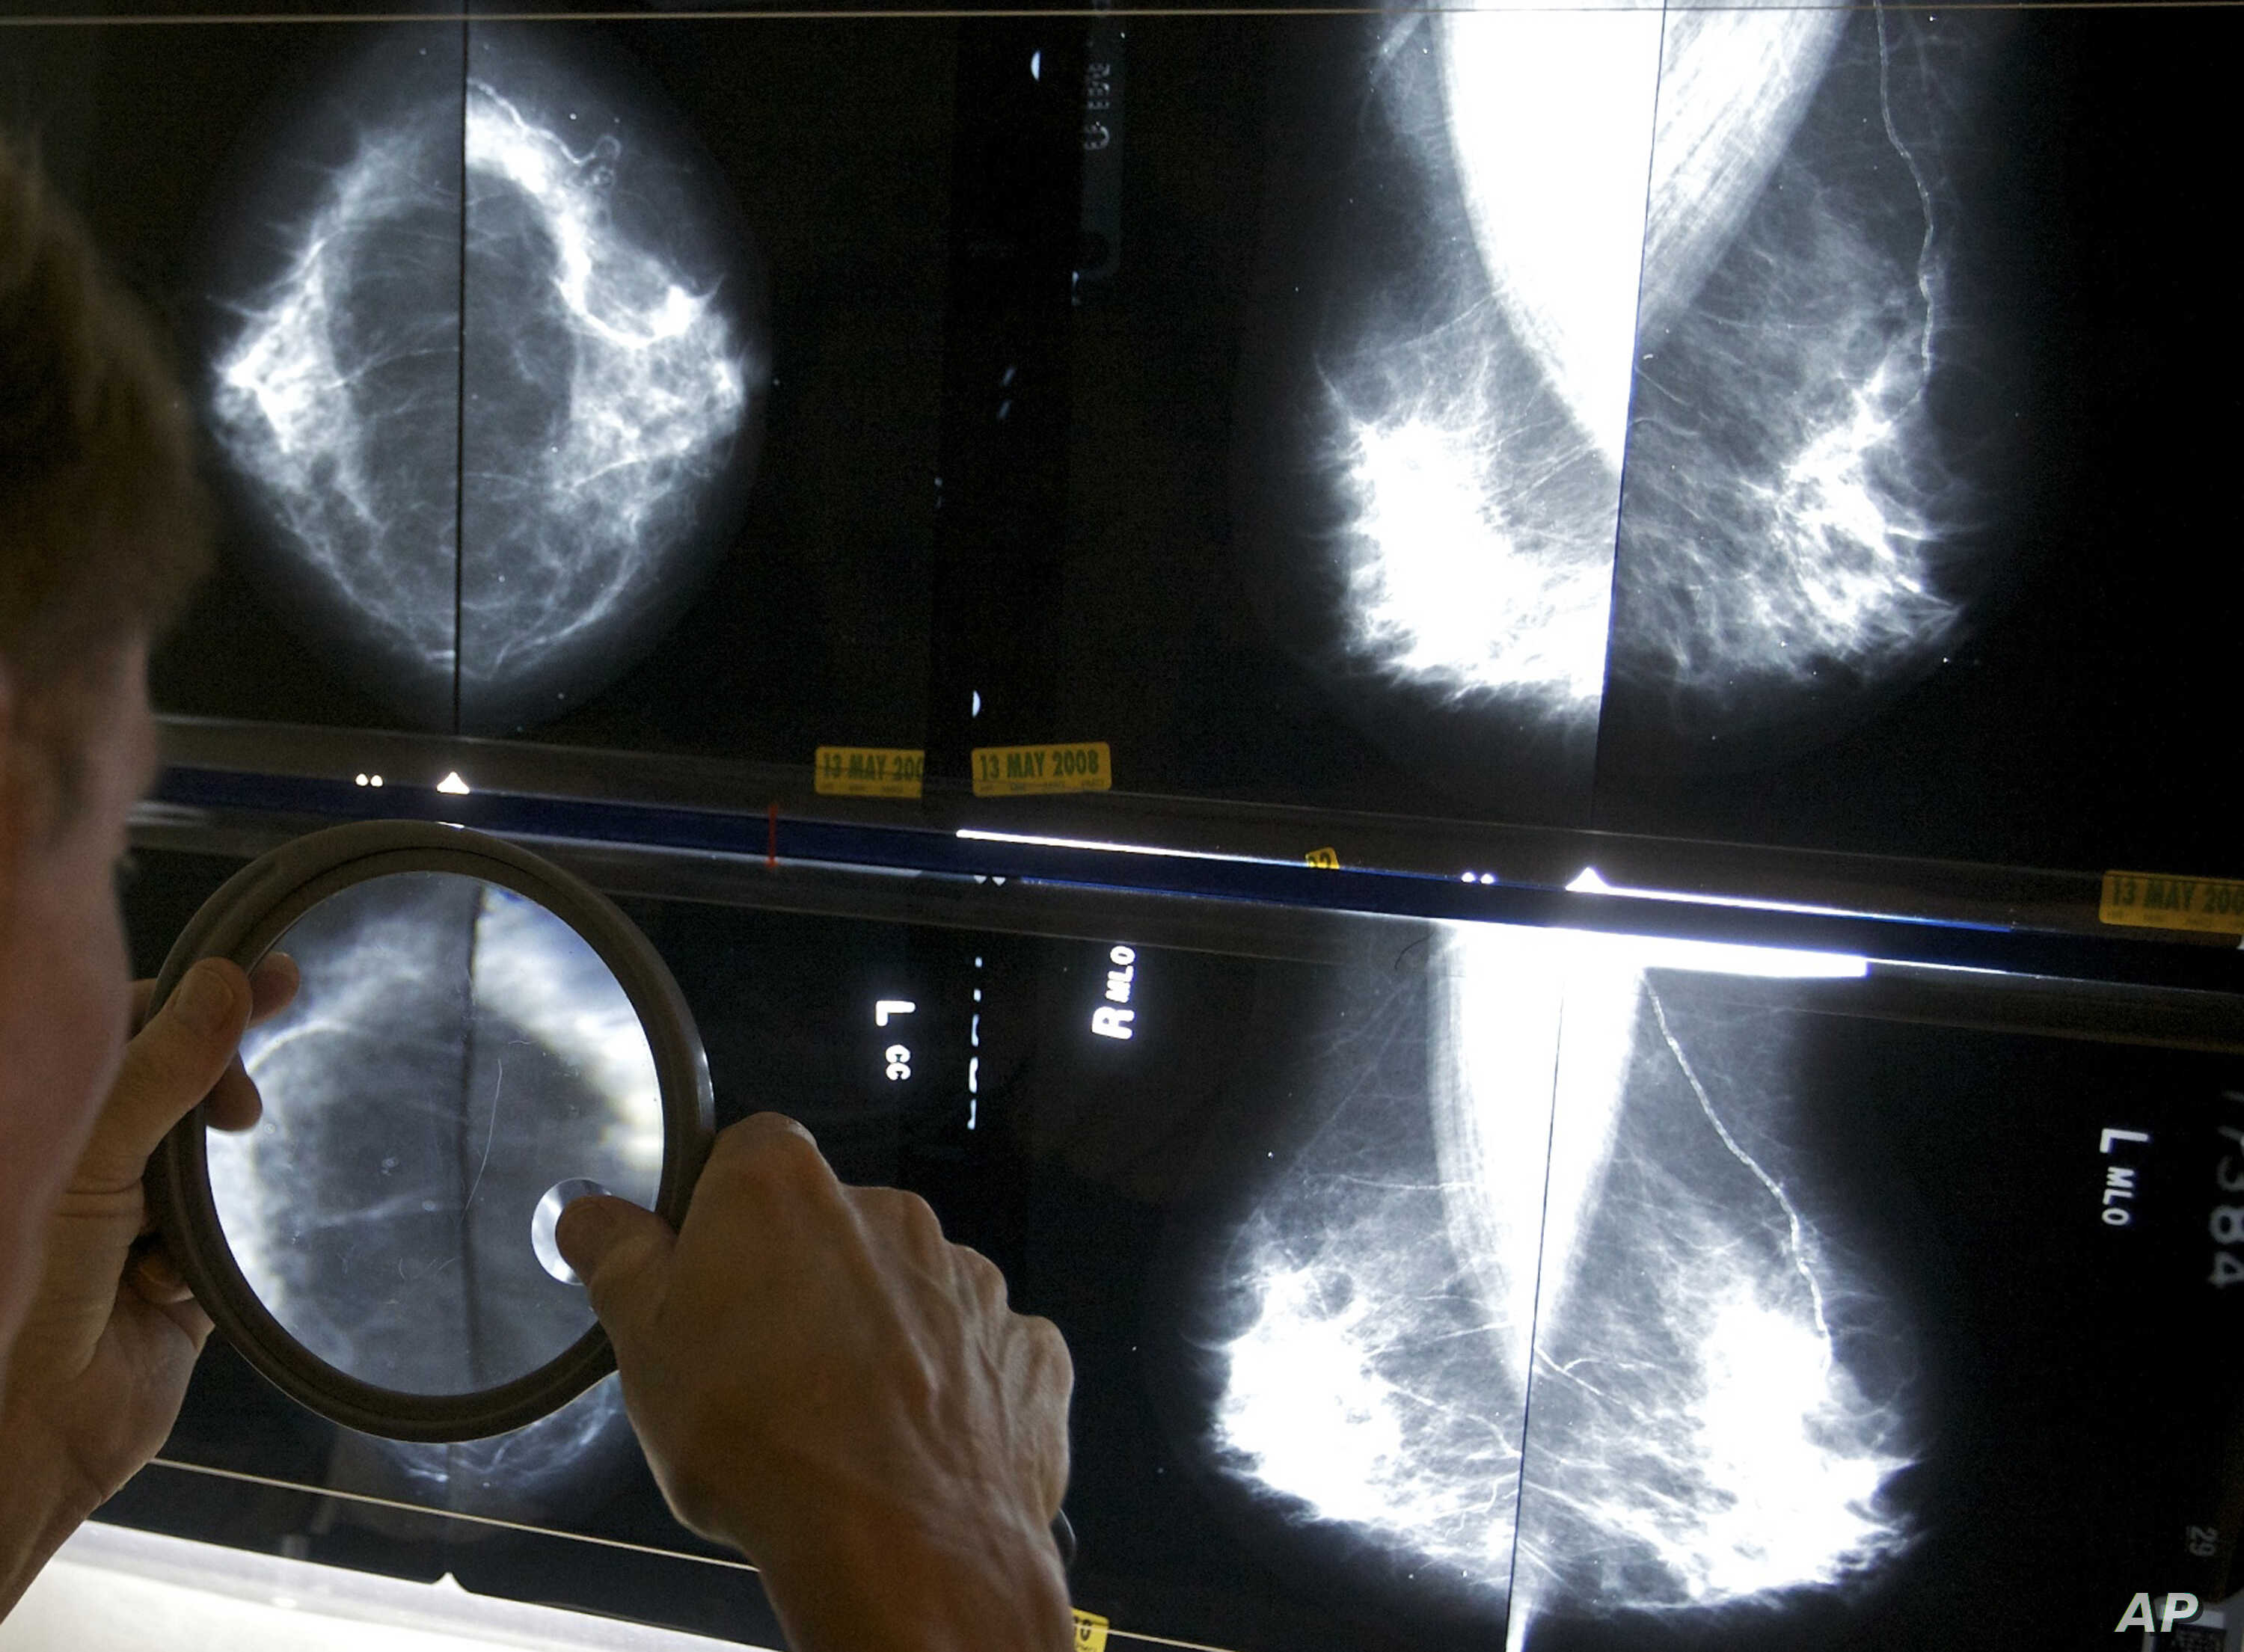 Study Discourages Chemotherapy for Some Breast Cancer